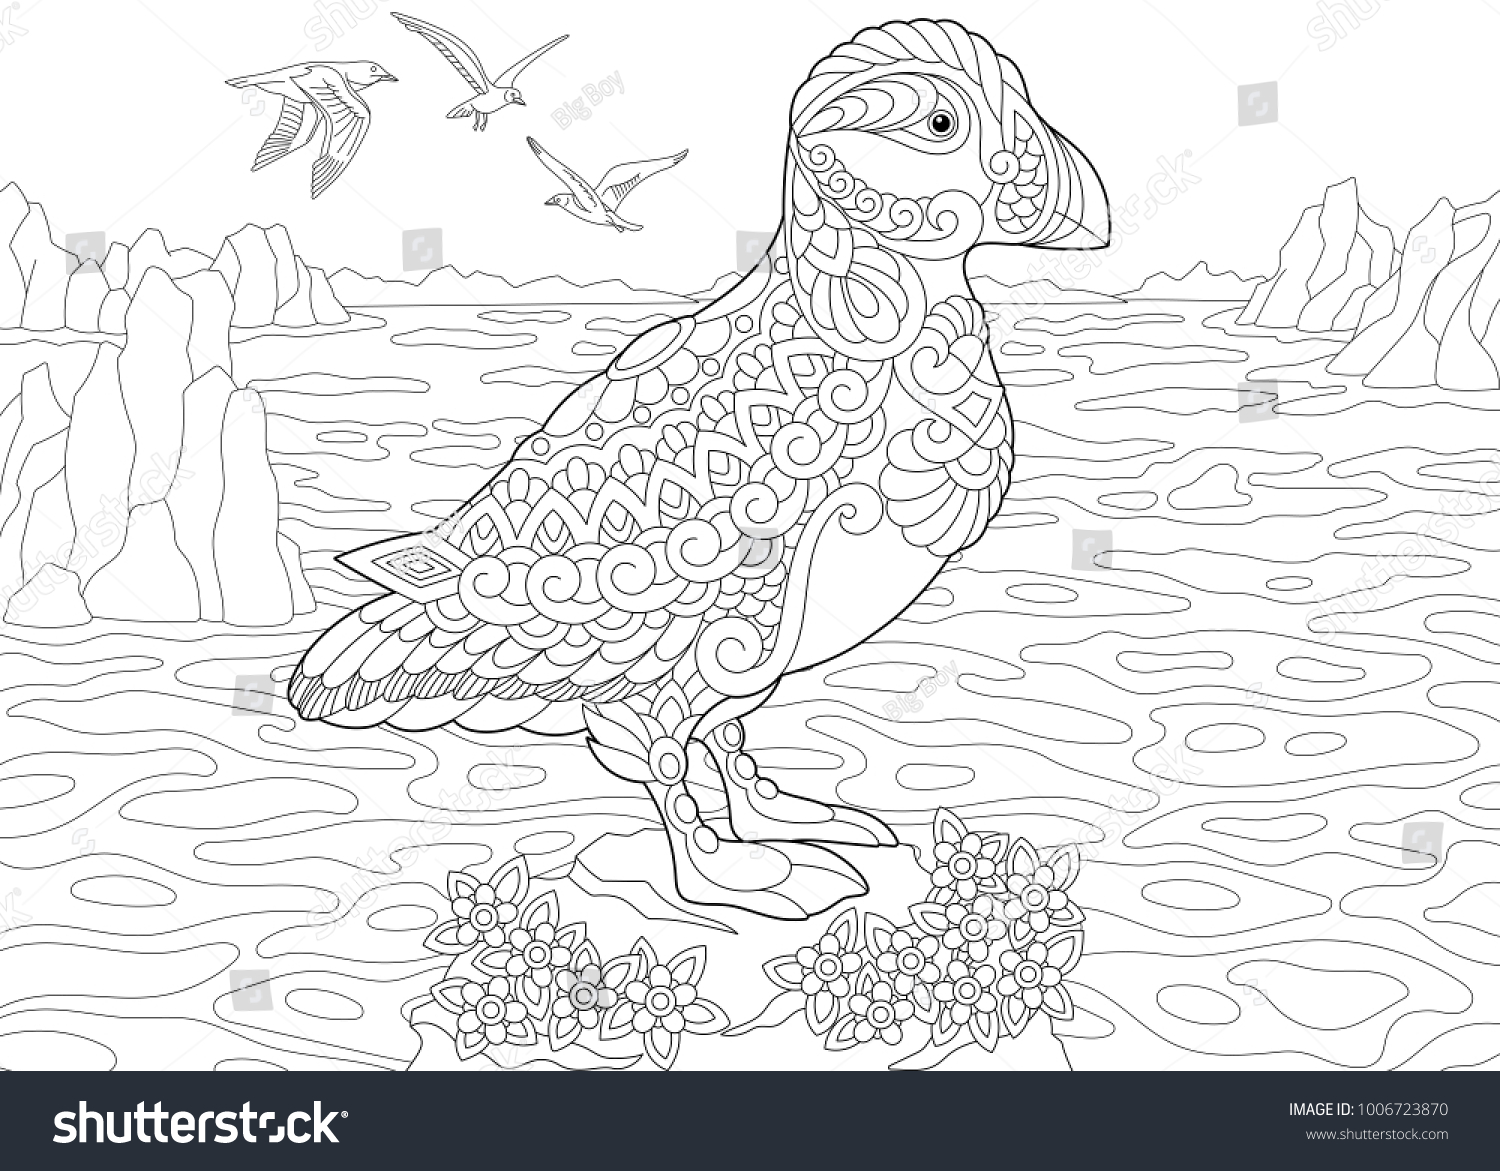 Animal Coloring Page Adult Coloring Book Stock Vector (Royalty Free ...